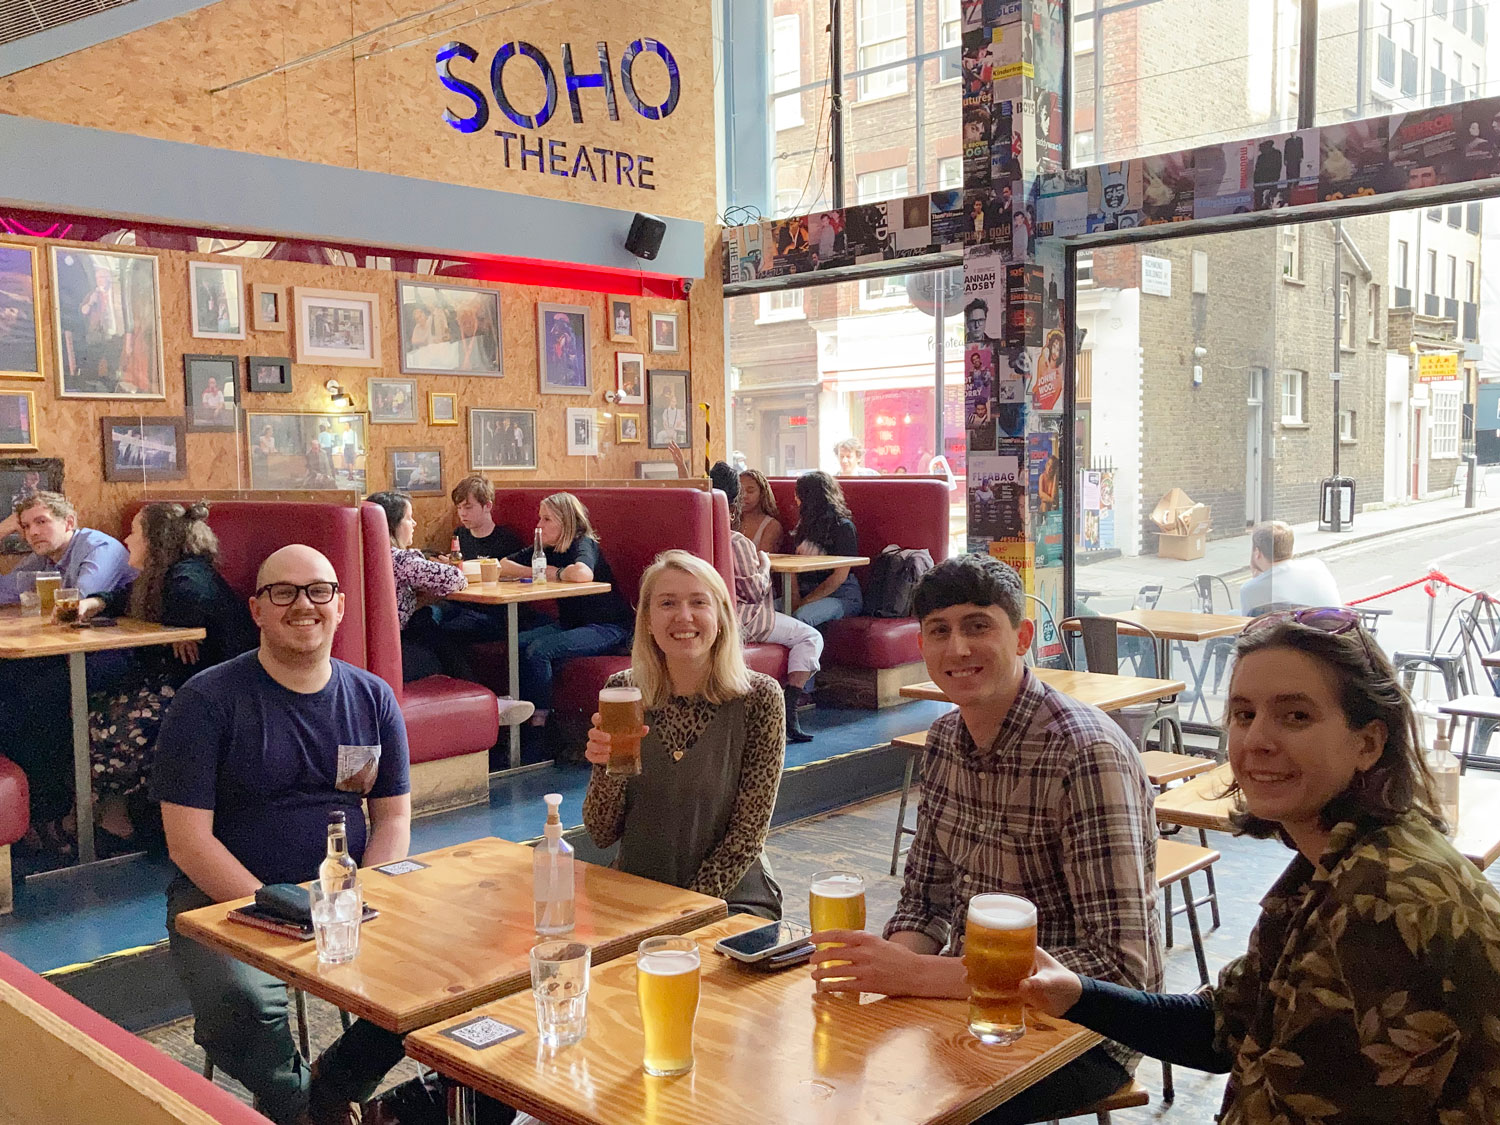 Four members of the Cog team sit at a table smiling and holding drinks at the Soho Theatre bar